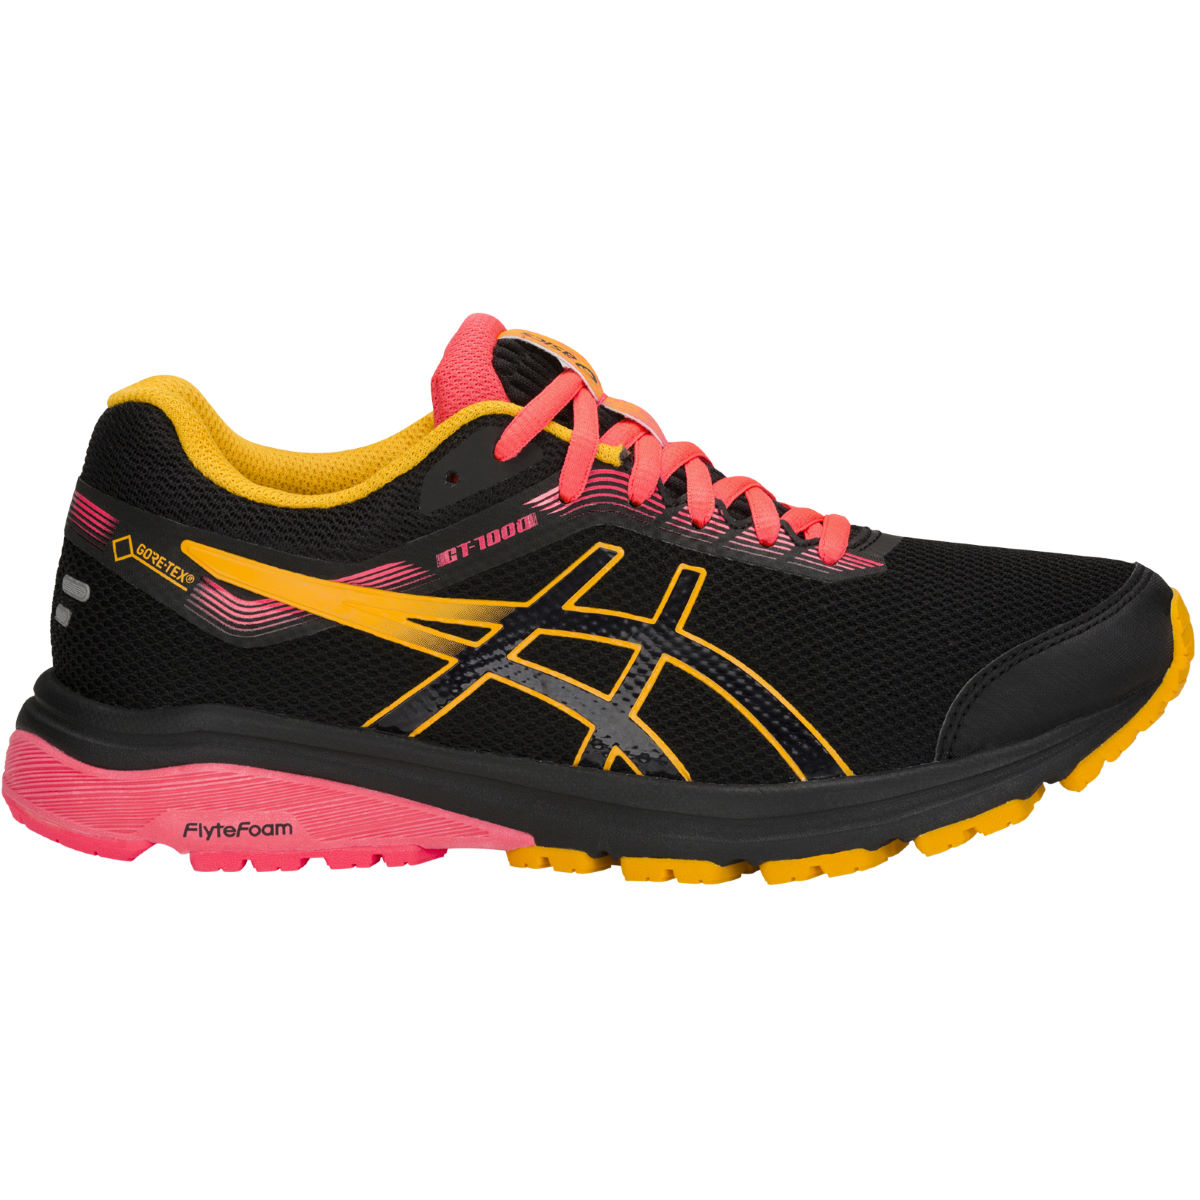 Asics Women's GT-1000 7 GTX Shoes - Zapatillas de running